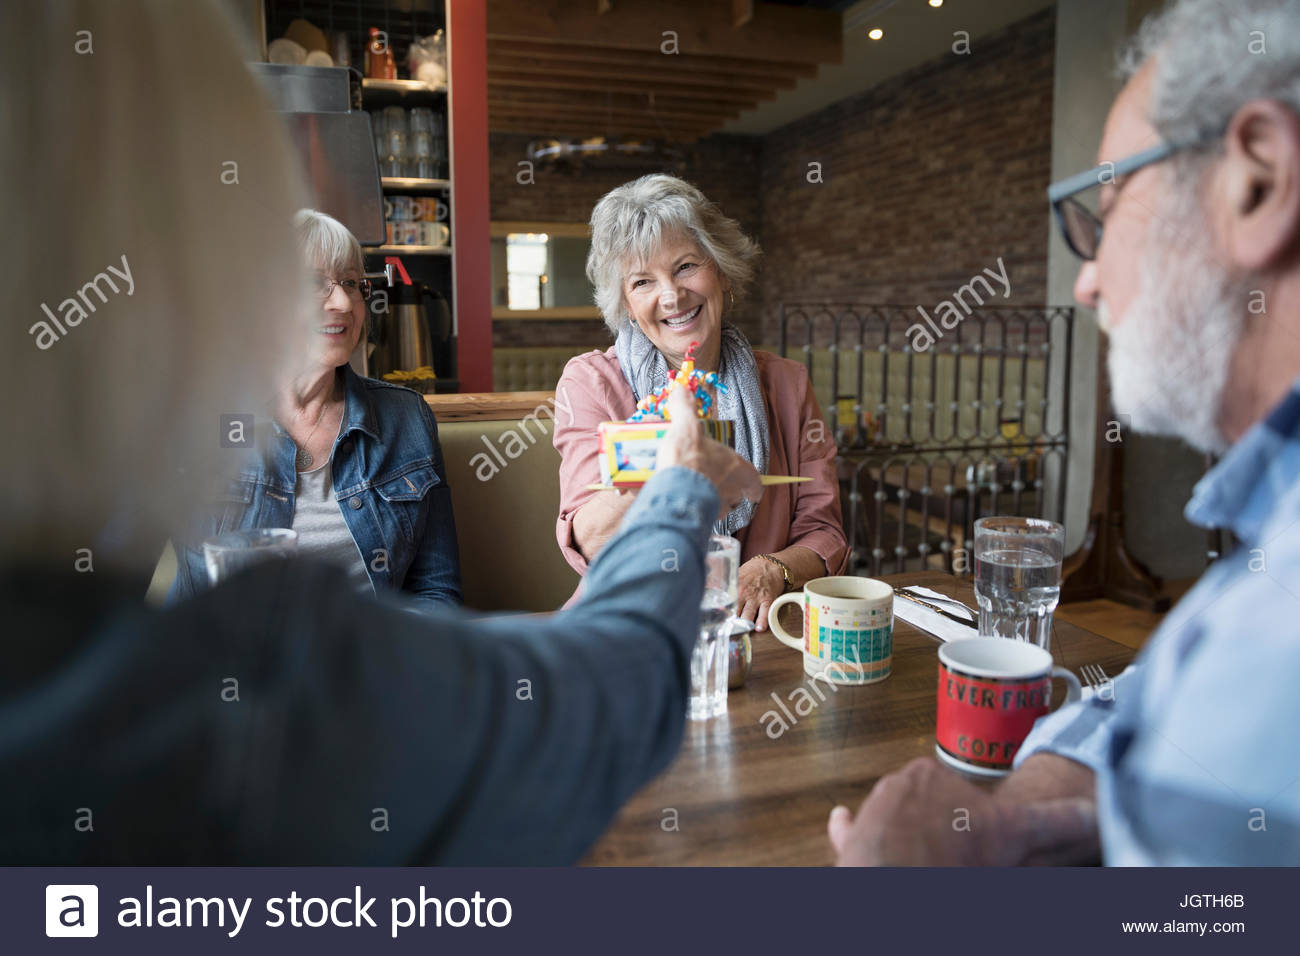 Smiling senior woman receiving birthday gift from friend in diner booth - Stock Image